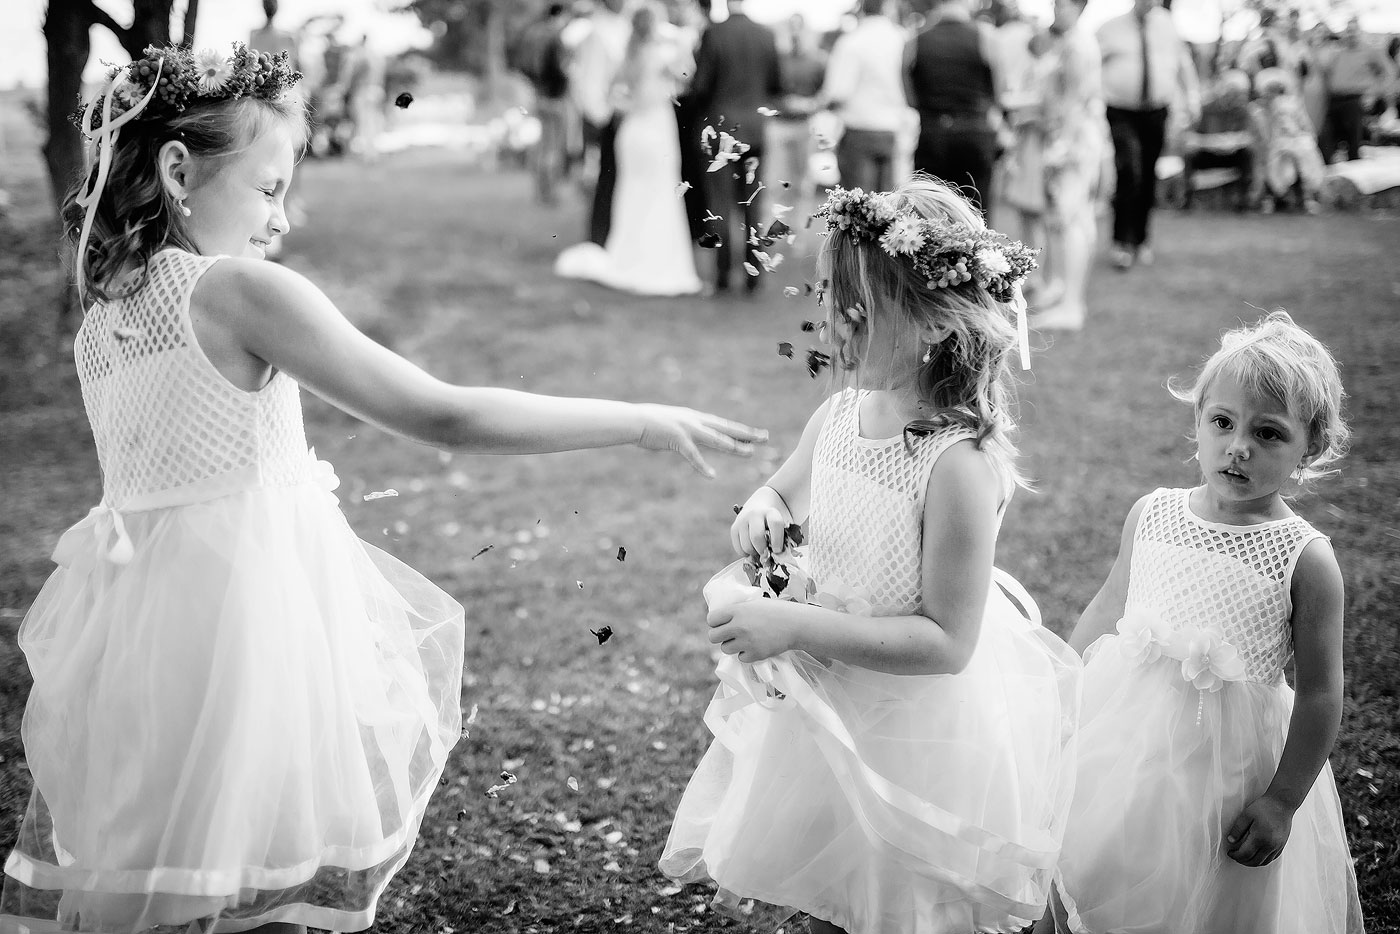 Wedding funny moment with flower girls and confetti.